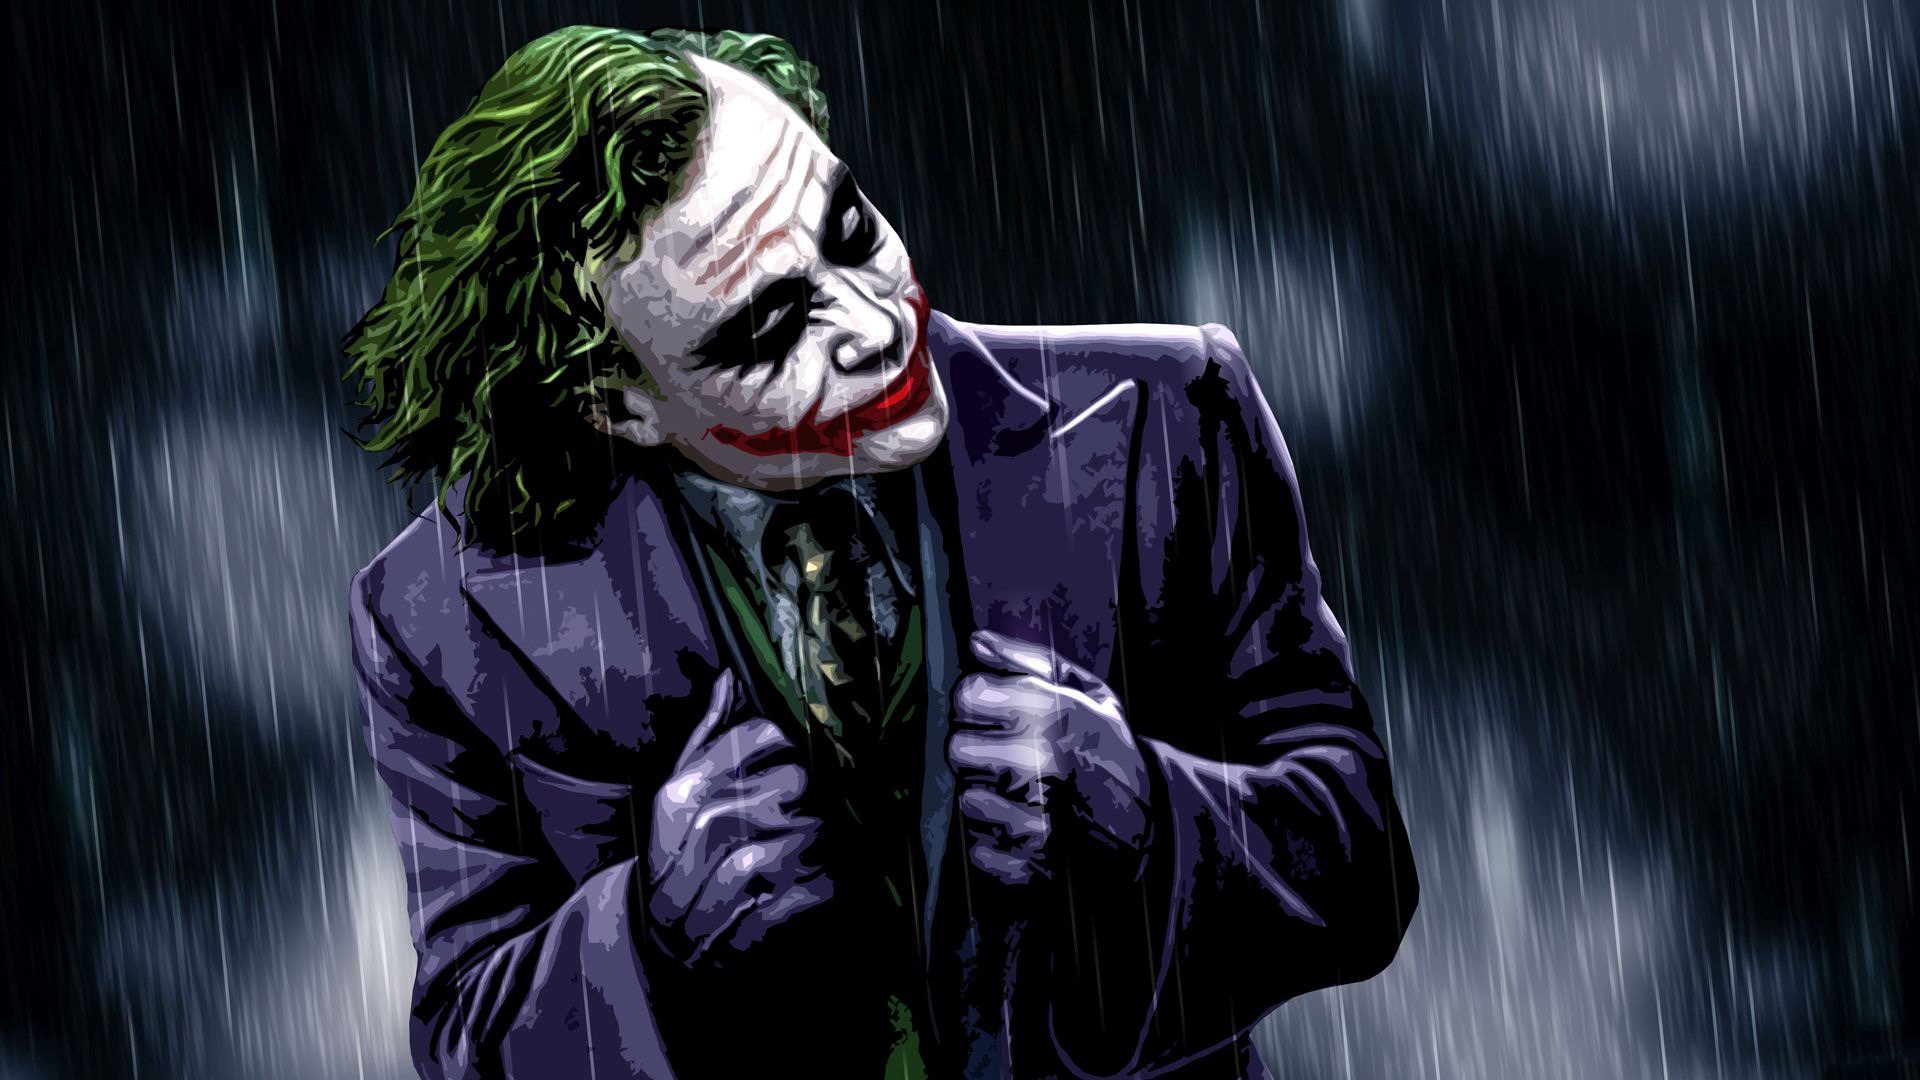 The Joker   The Dark Knight wallpaper 20415 1920x1080